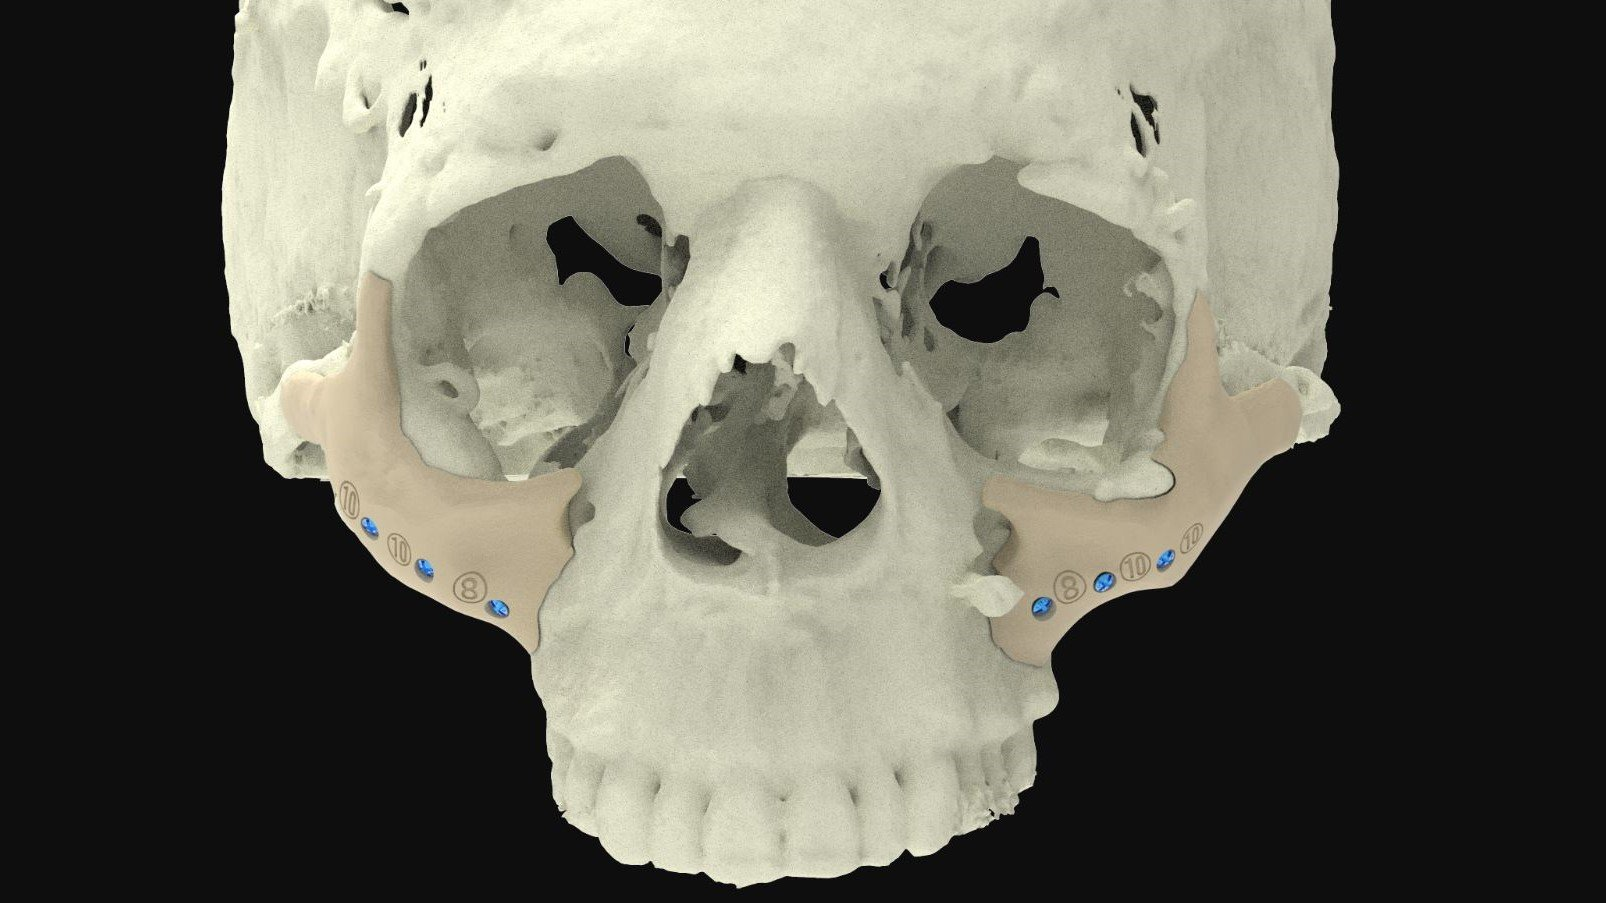 3D Printed Bones: The Most Jaw-Dropping Projects | All3DP